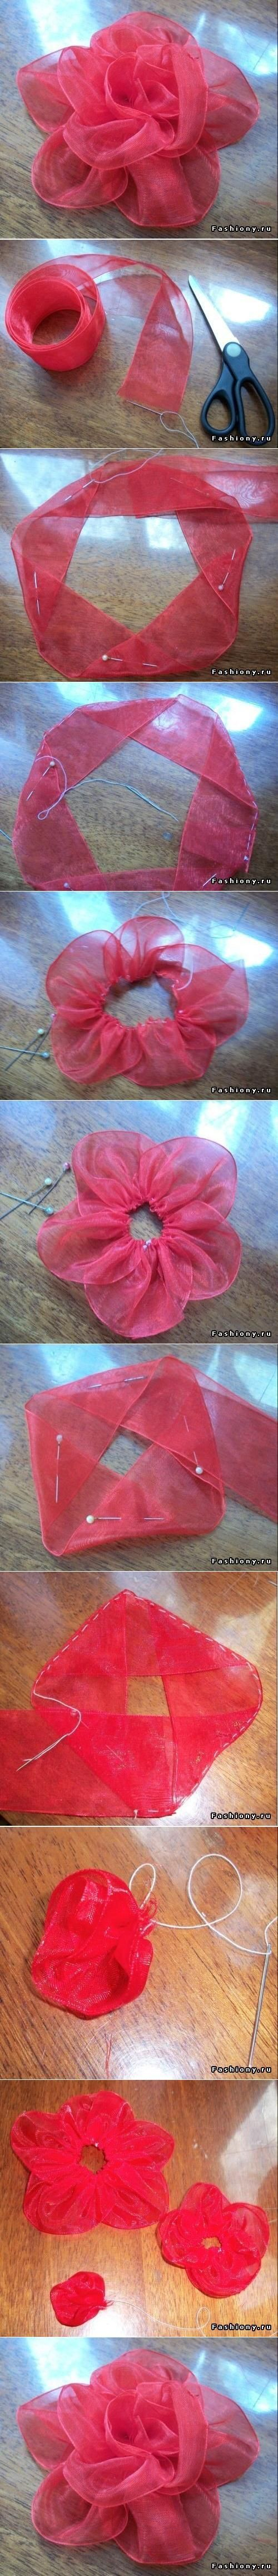 "<input+type=""hidden""+value=""""+data-frizzlyPostContainer=""""+data-frizzlyPostUrl=""http://www.usefuldiy.com/diy-ribbon-tape-flower/""+data-frizzlyPostTitle=""DIY+Ribbon+Tape+Flower""+data-frizzlyHoverContainer=""""><p>>>>+Craft+Tutorials+More+Free+Instructions+Free+Tutorials+More+Craft+Tutorials</p>"